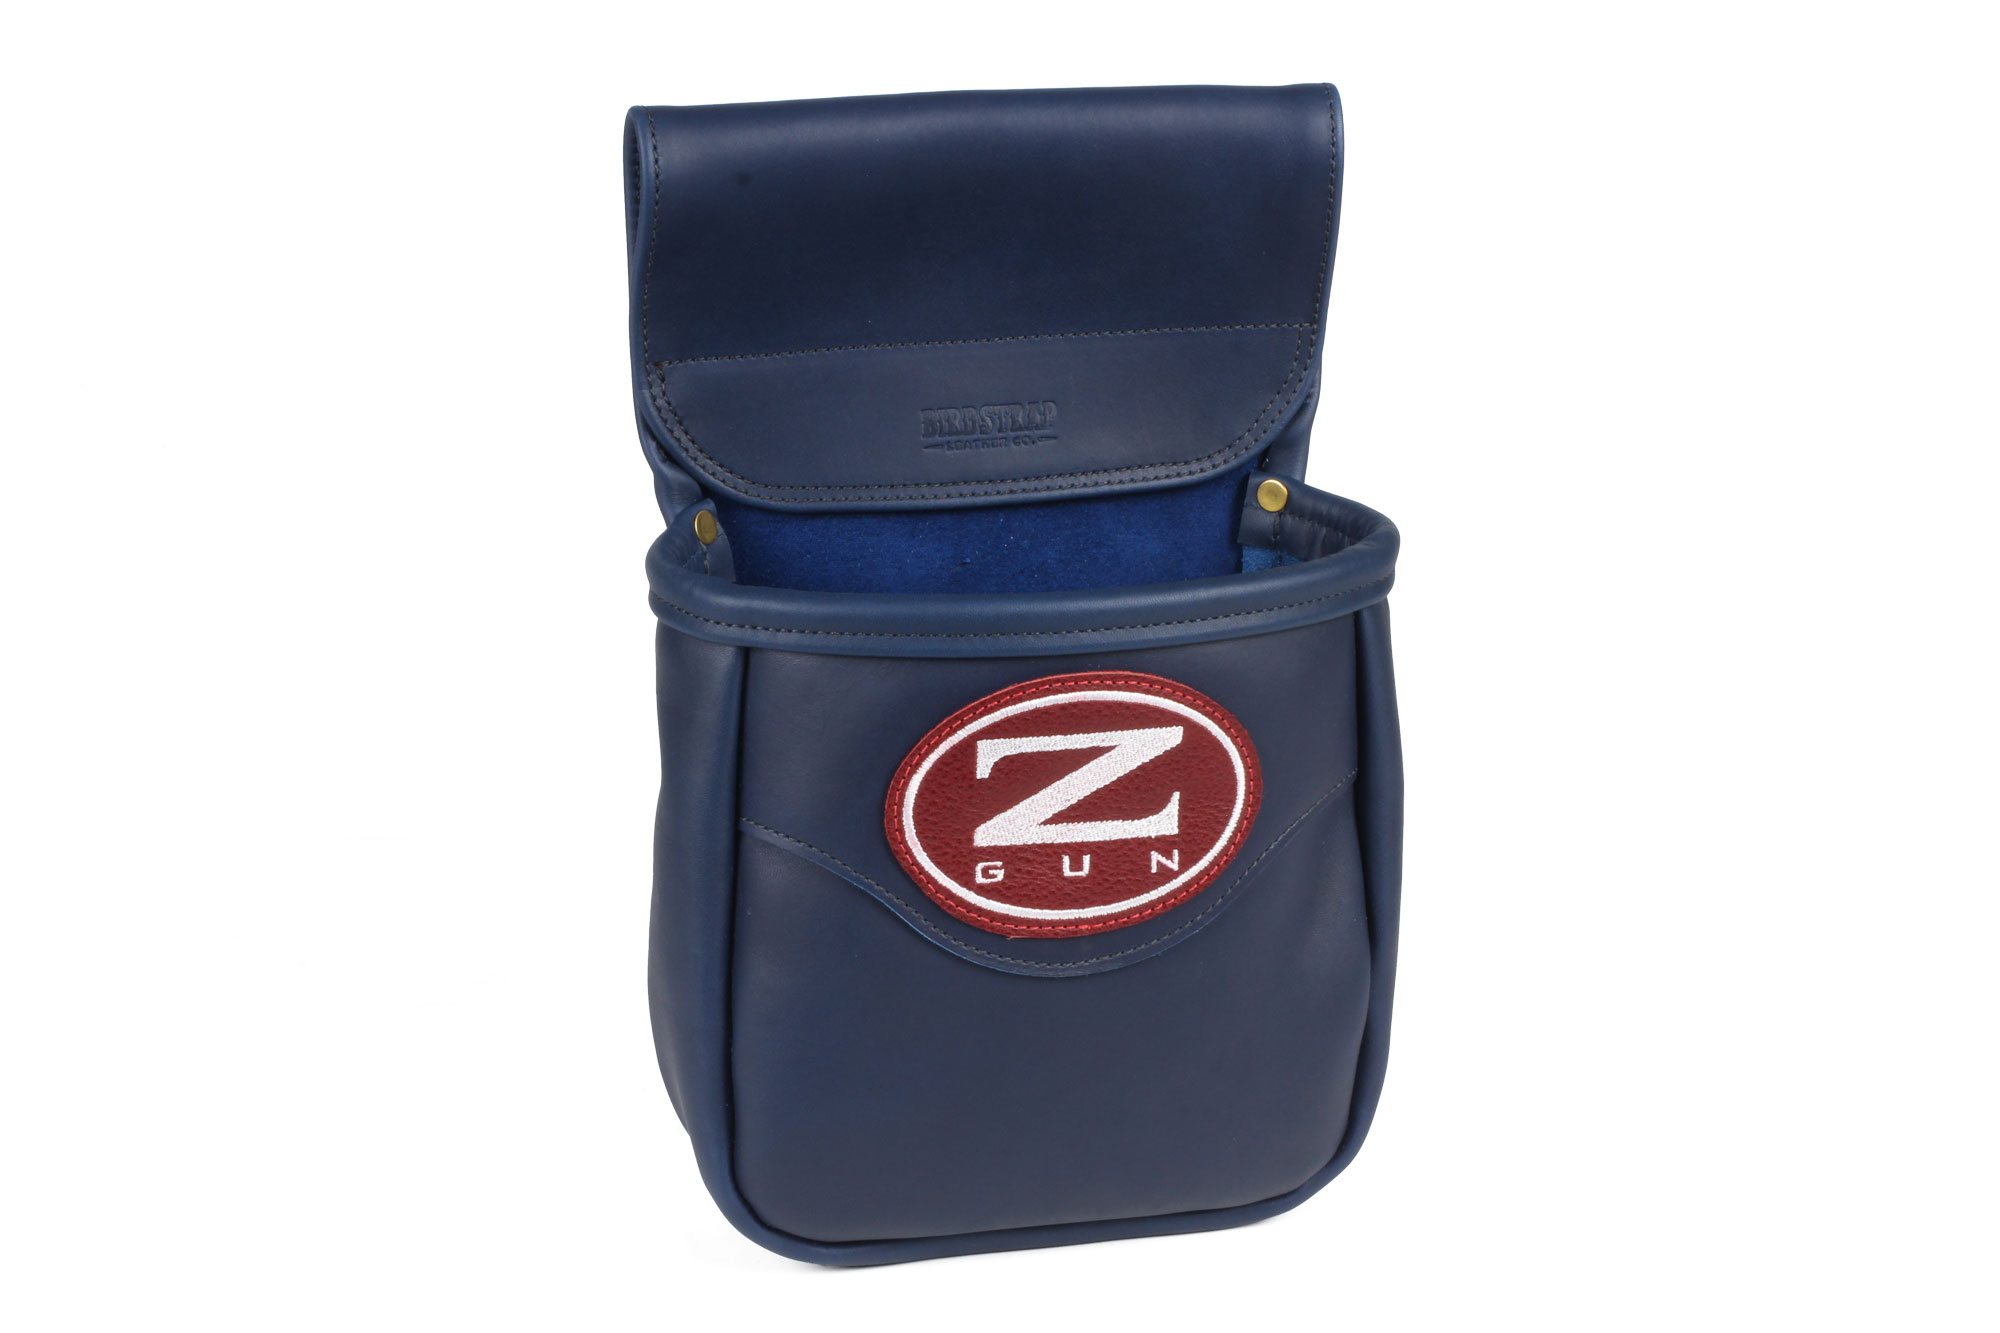 Zoli Leather Embroidered Shooting Pouch